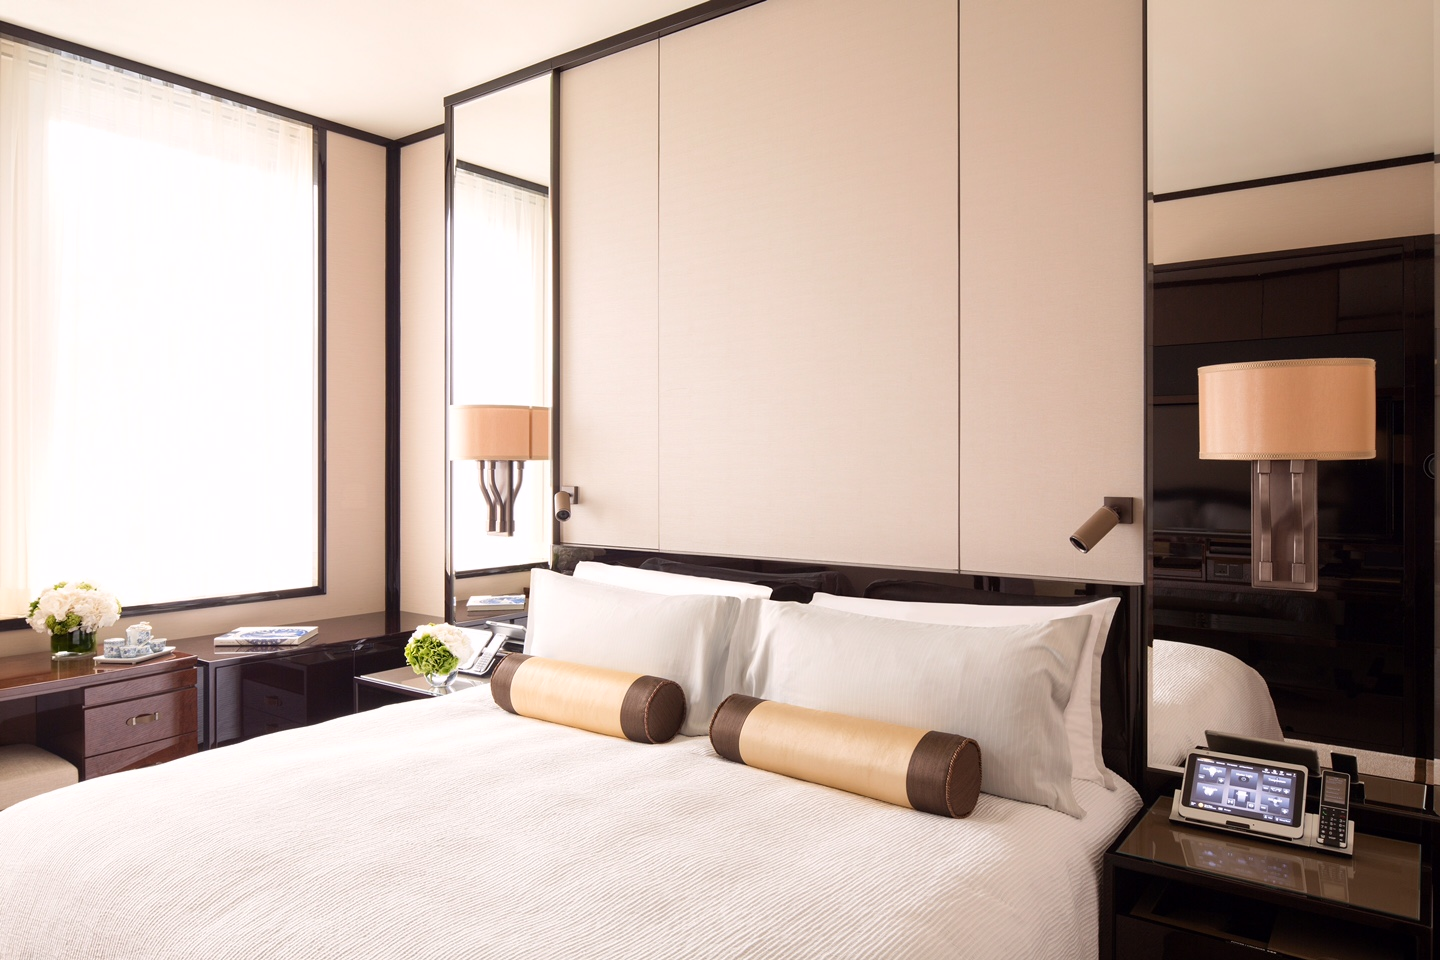 Check into a sumptuous room during a Hong Kong staycation at the peninsula